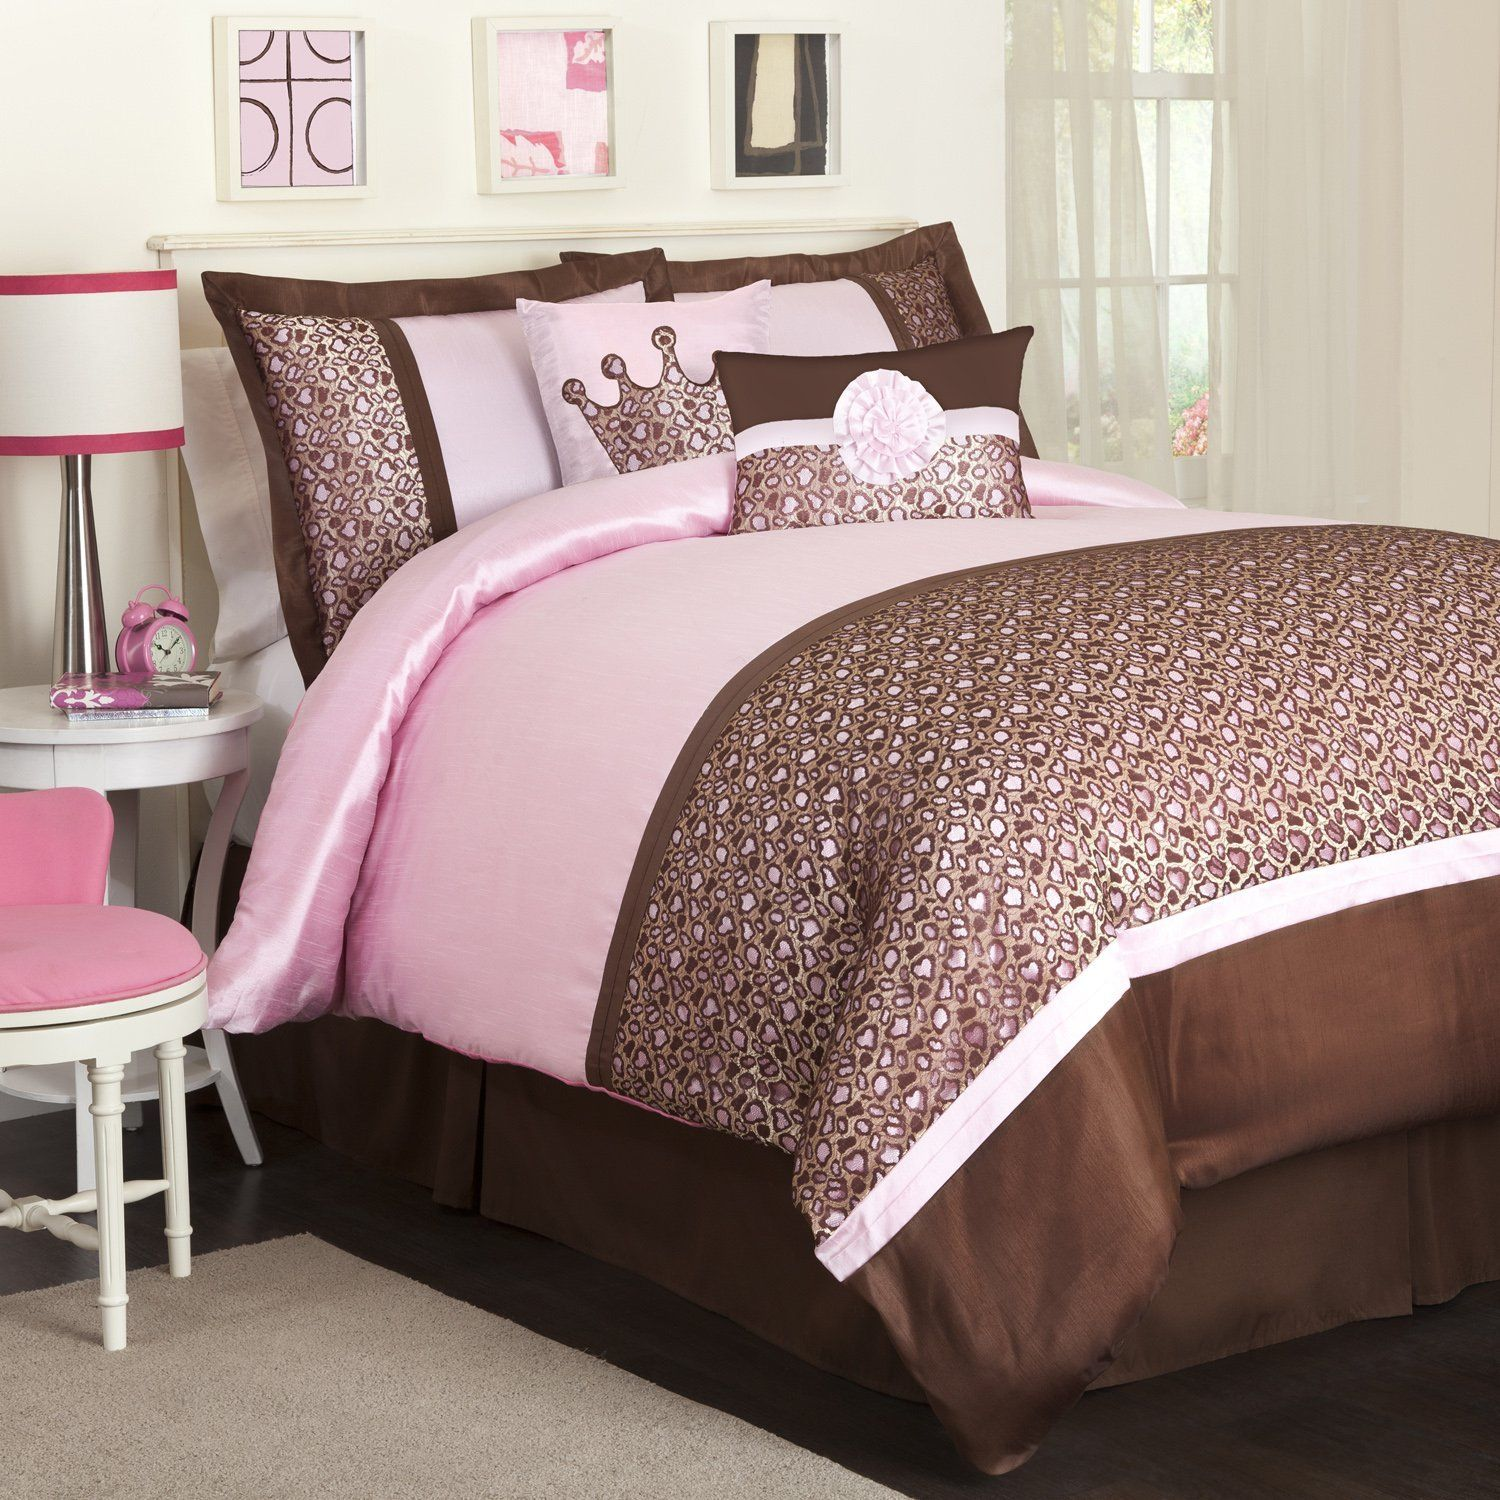 painting of cool urban outfitter bedding bedroom design pink and blue bedroom designs 18 - Pink And Brown Bedroom Decorating Ideas